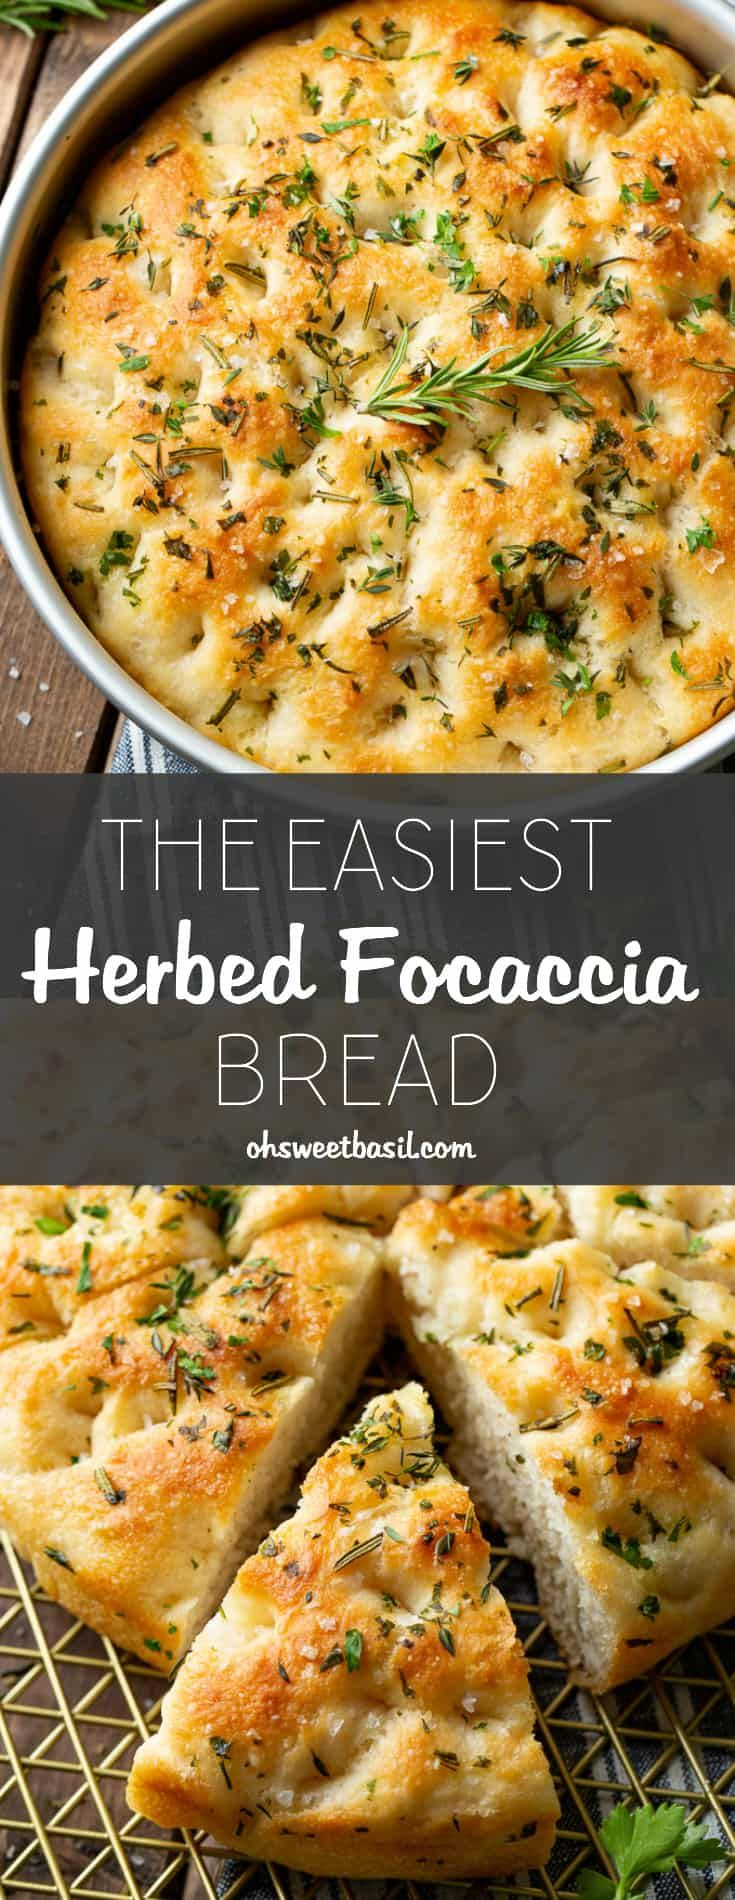 The Easiest Herbed Focaccia Bread